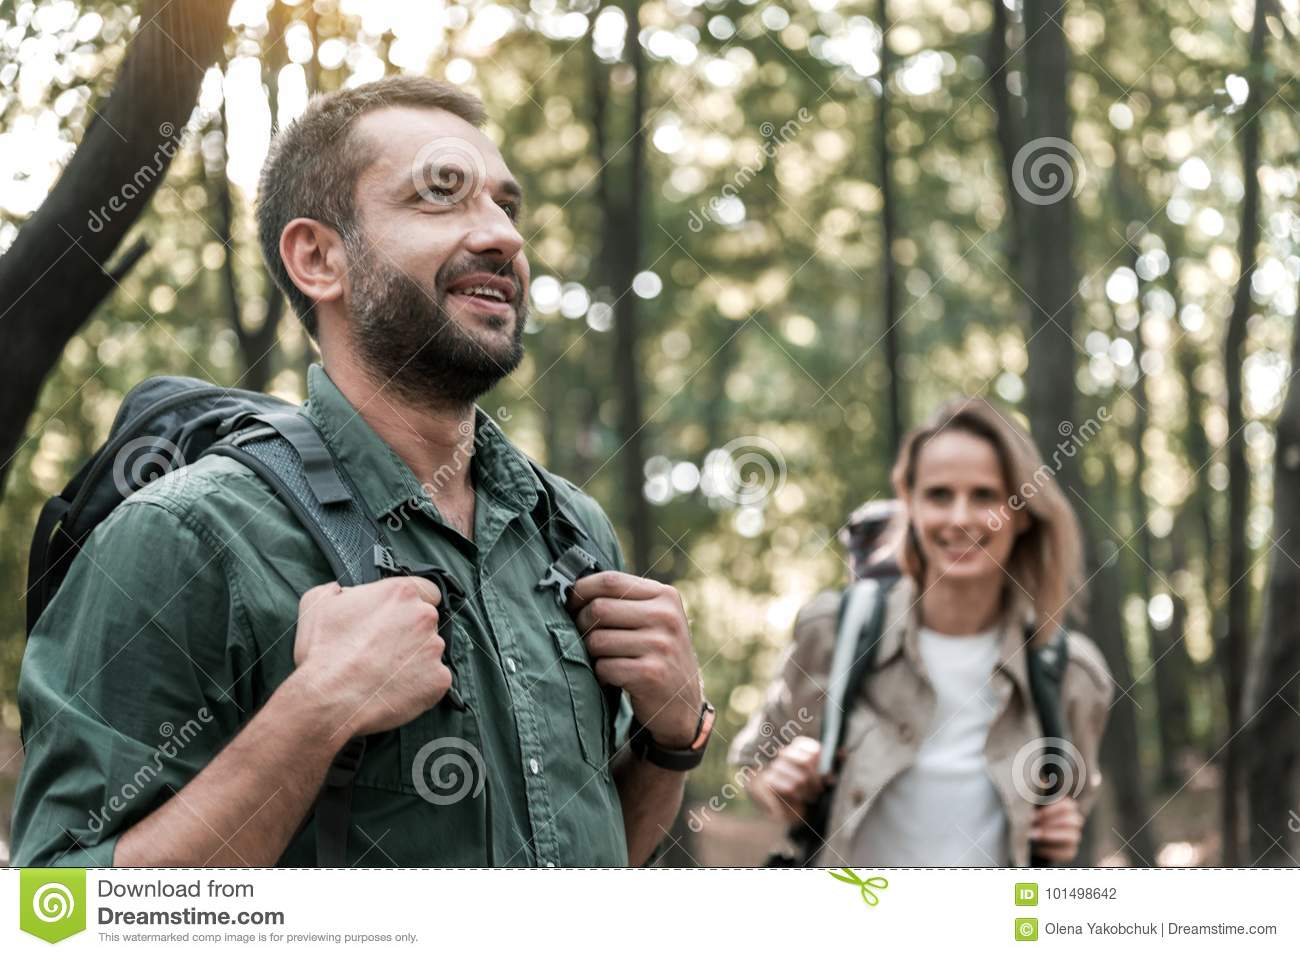 Enjoyment in the forest